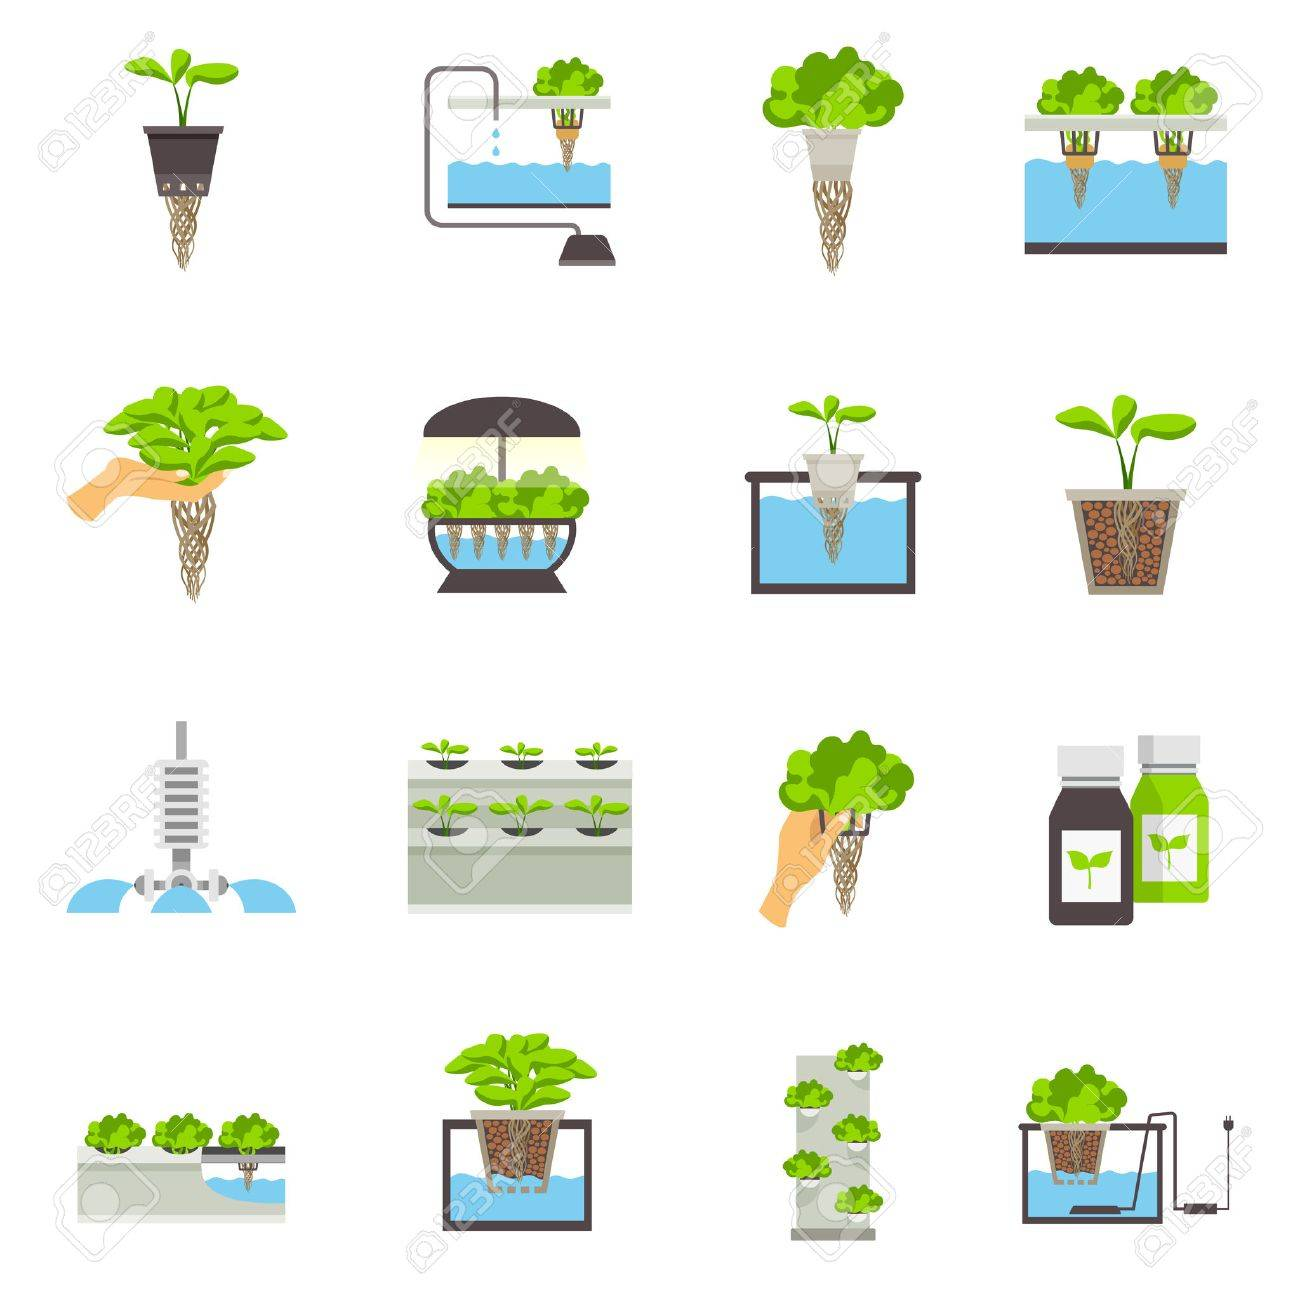 Set of color flat icons depicting elements of hydroponic system vector illustration Stock Vector - 60299299